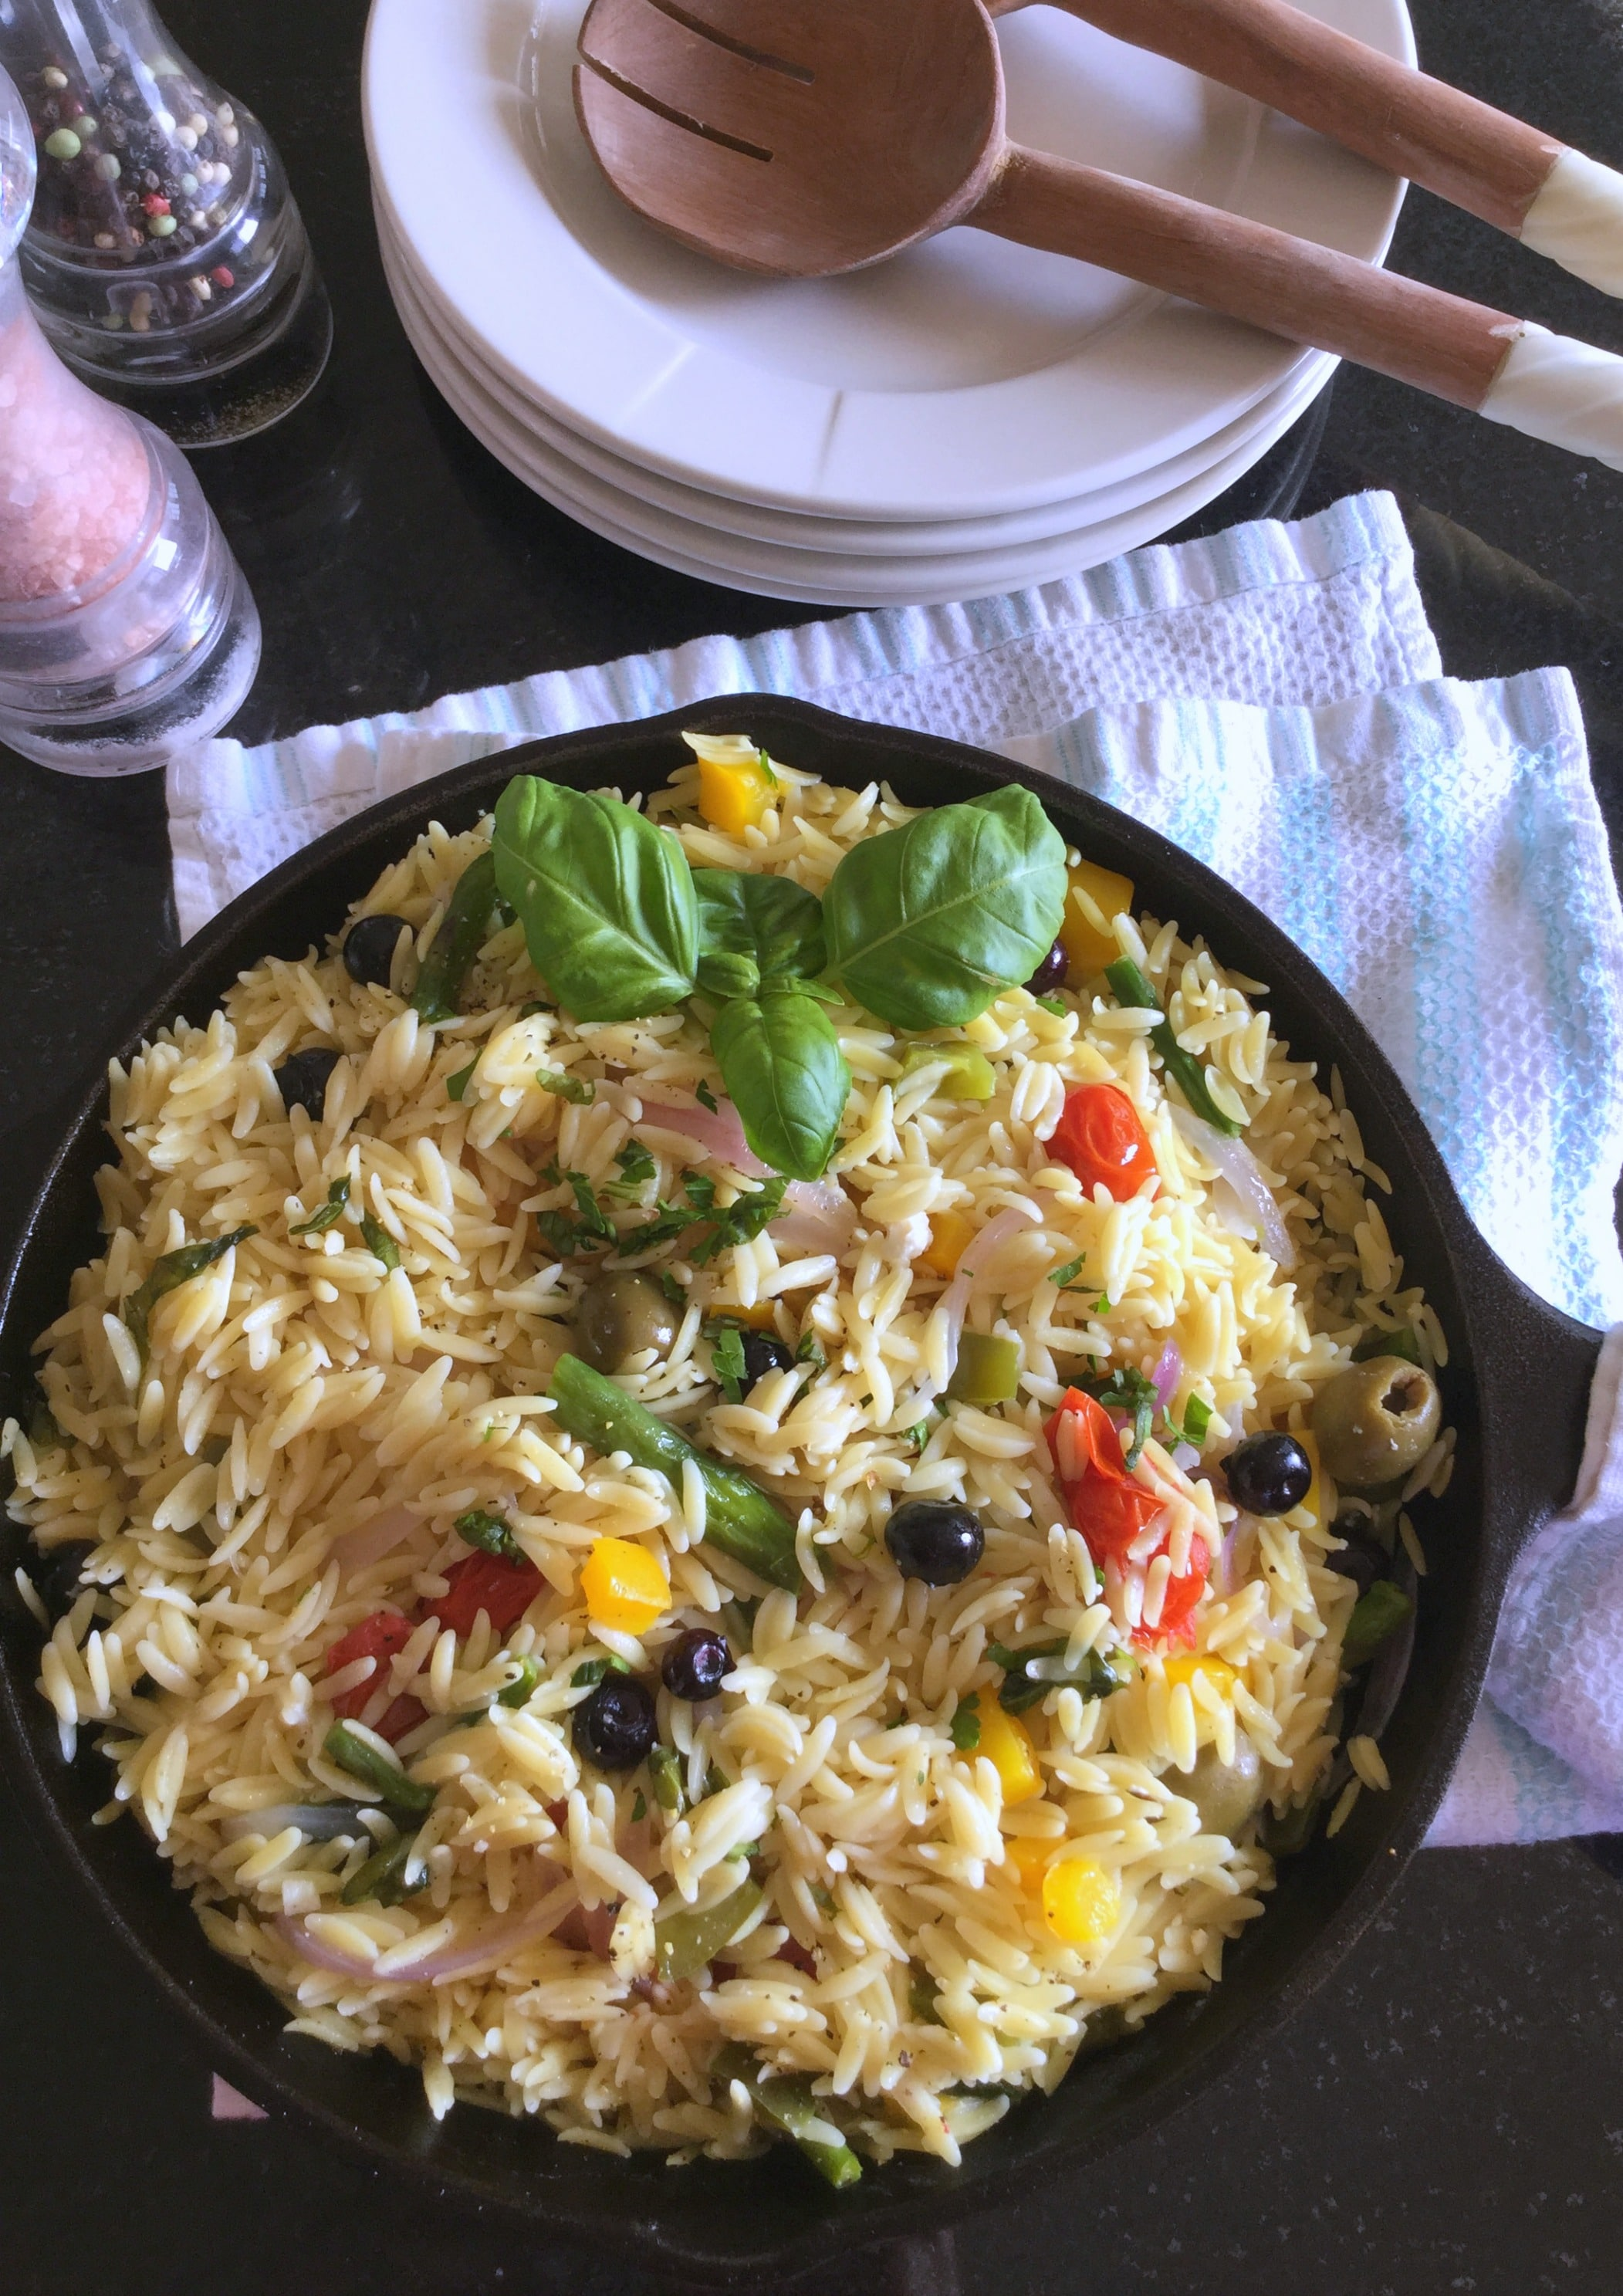 This Lemon Orzo Primavera contains your serving of starch and it's packed with veggies, herbs and other delicious flavors and healthy fats